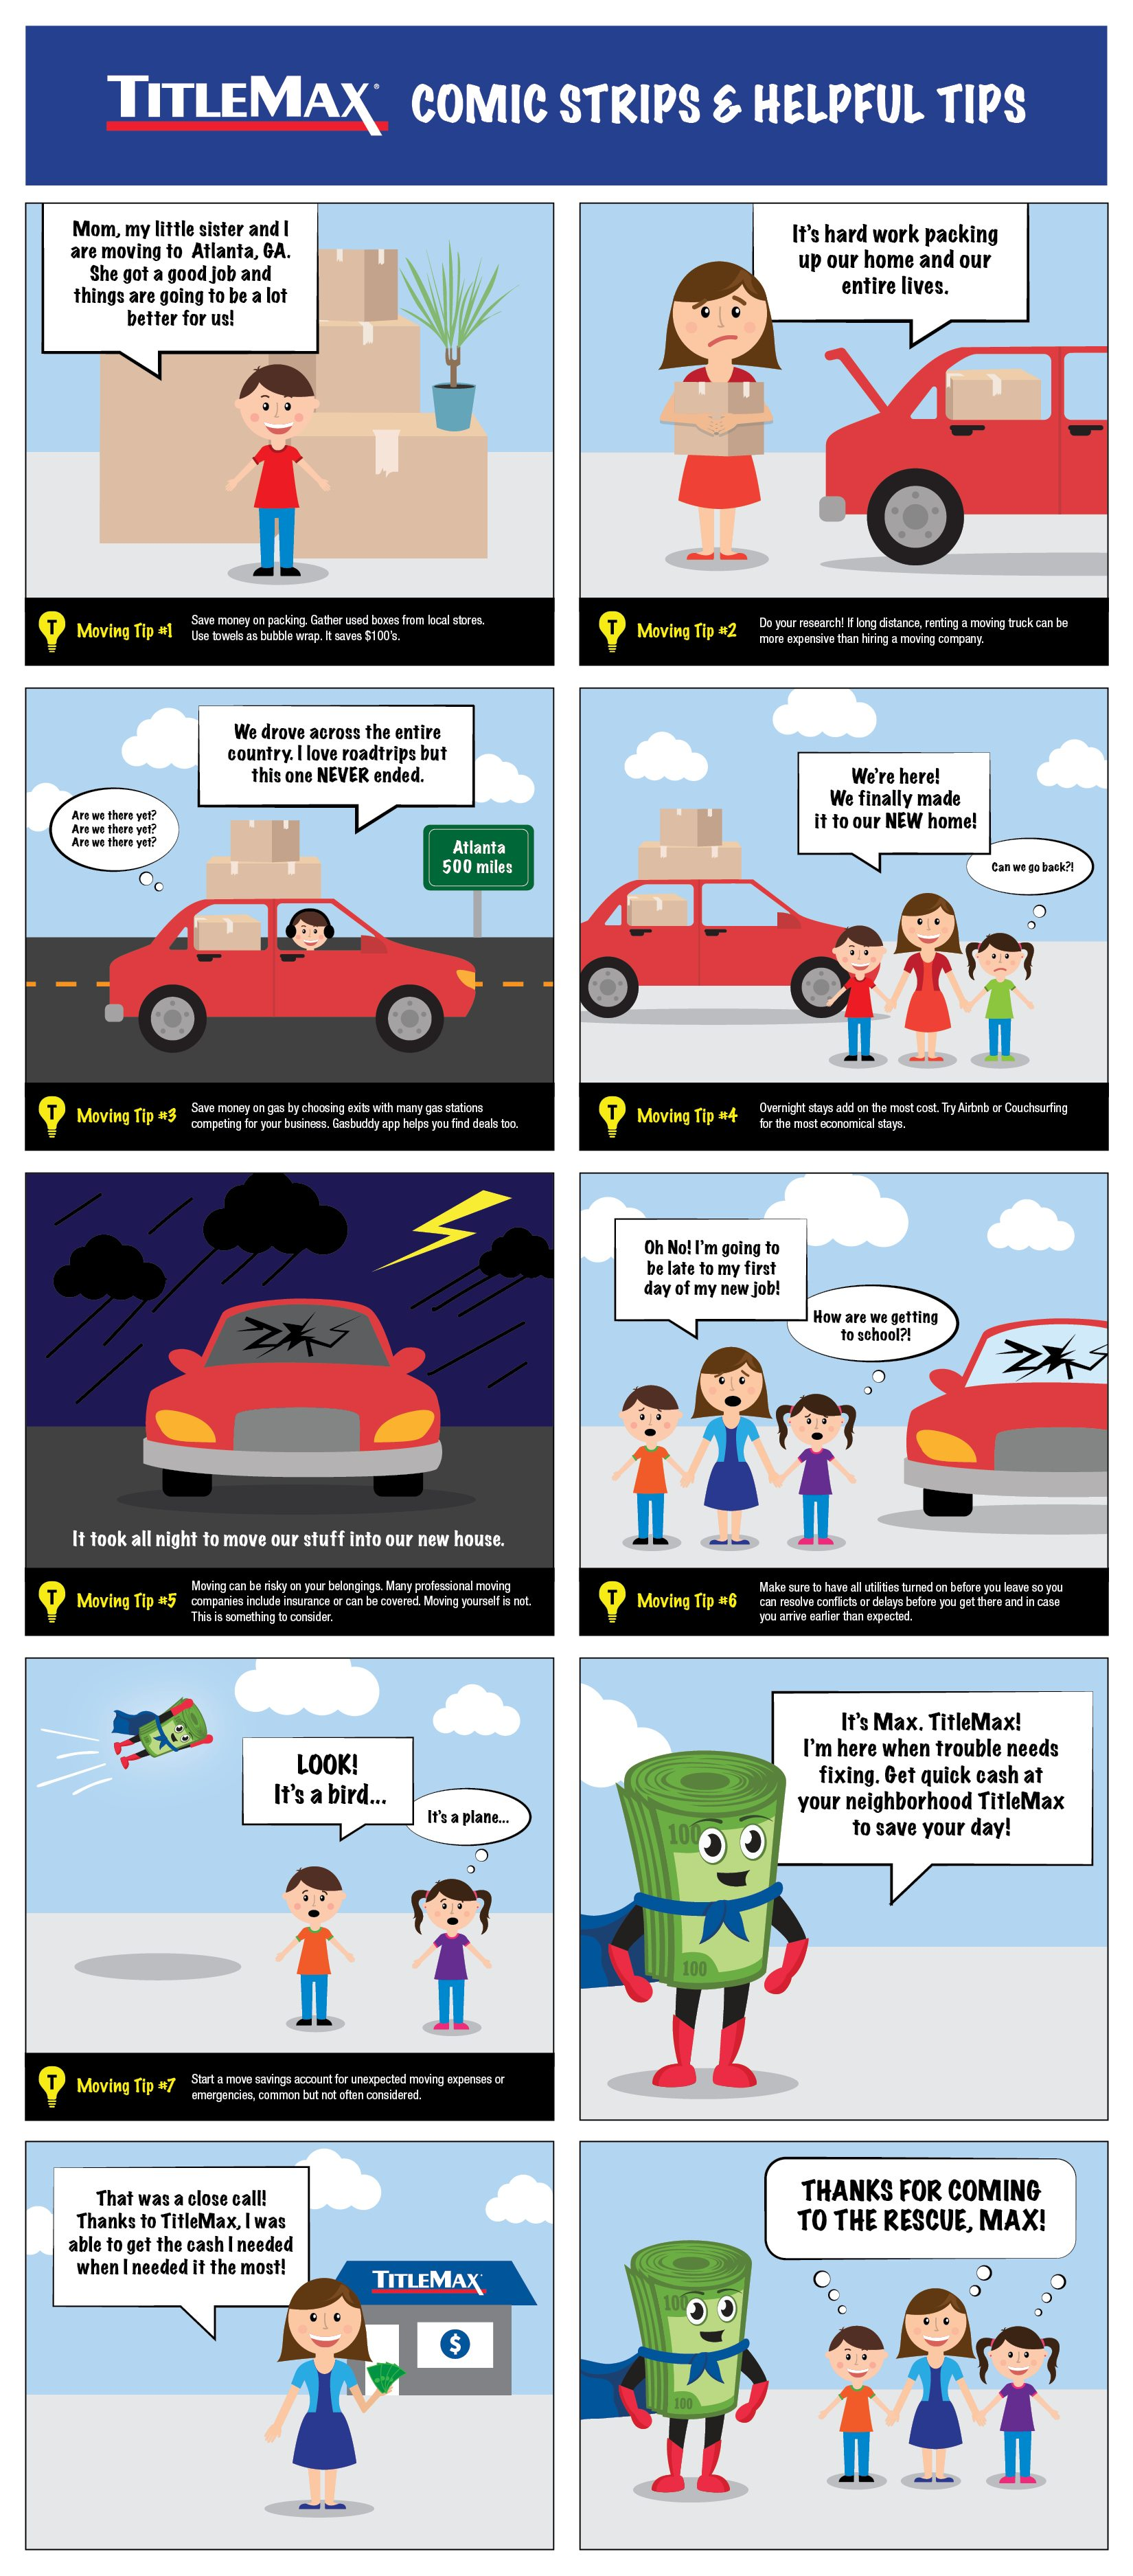 TitleMax Comic Strips & Helpful Tips - Max to the rescue!